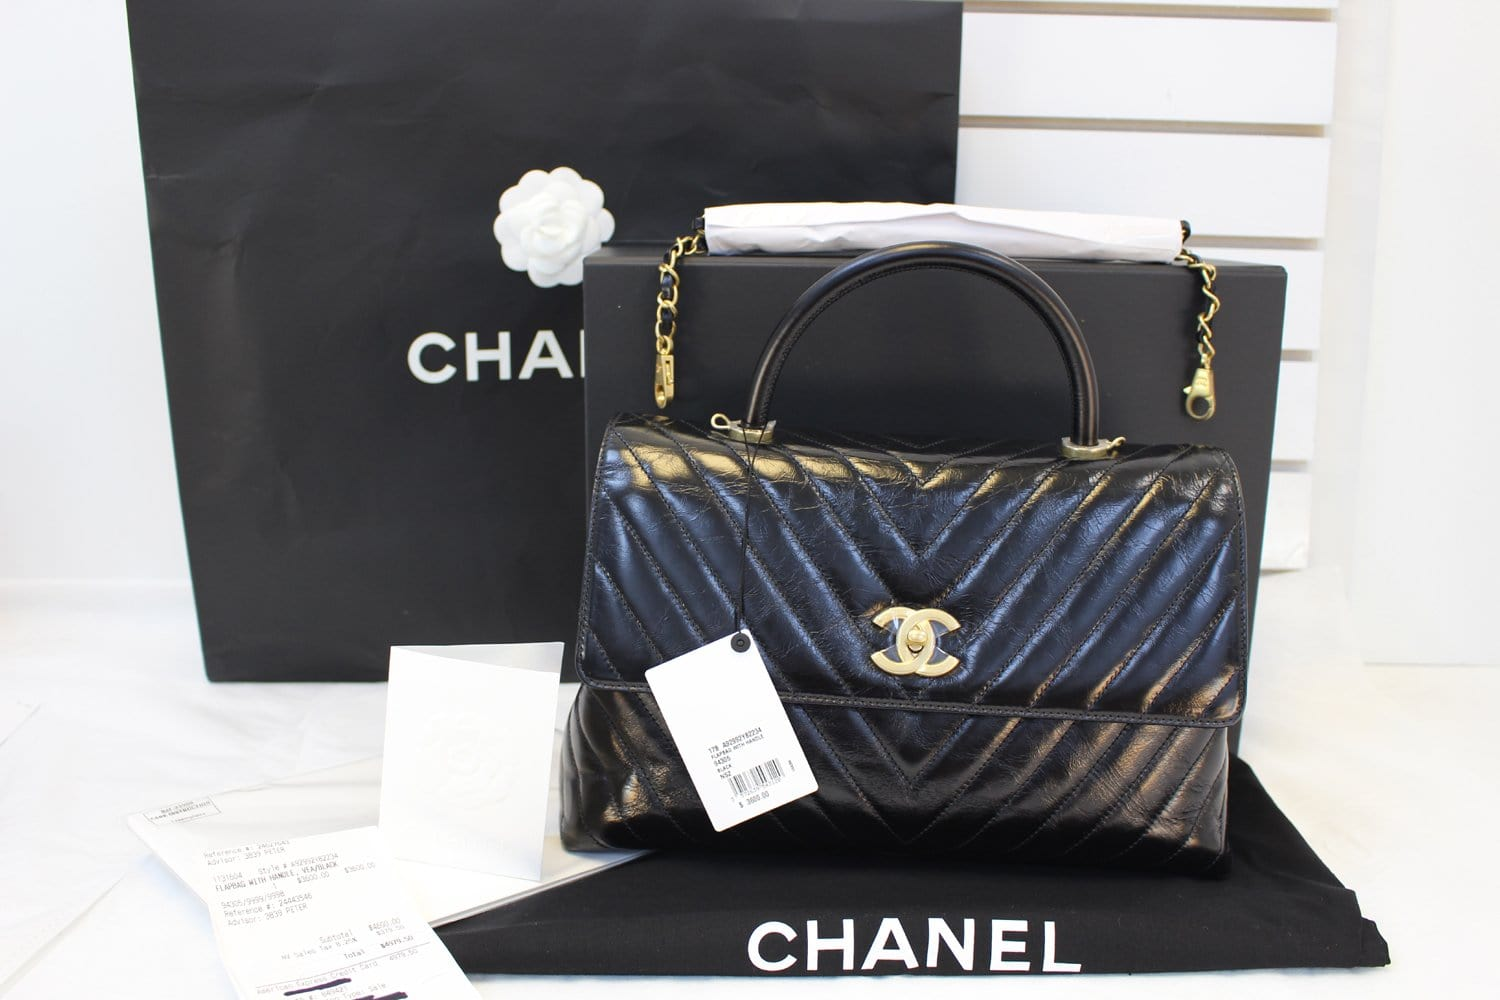 0f47b2493d8f7 Authentic CHANEL Black Quilted Lambskin Chevron Leather Top Handle Bag  TT1564